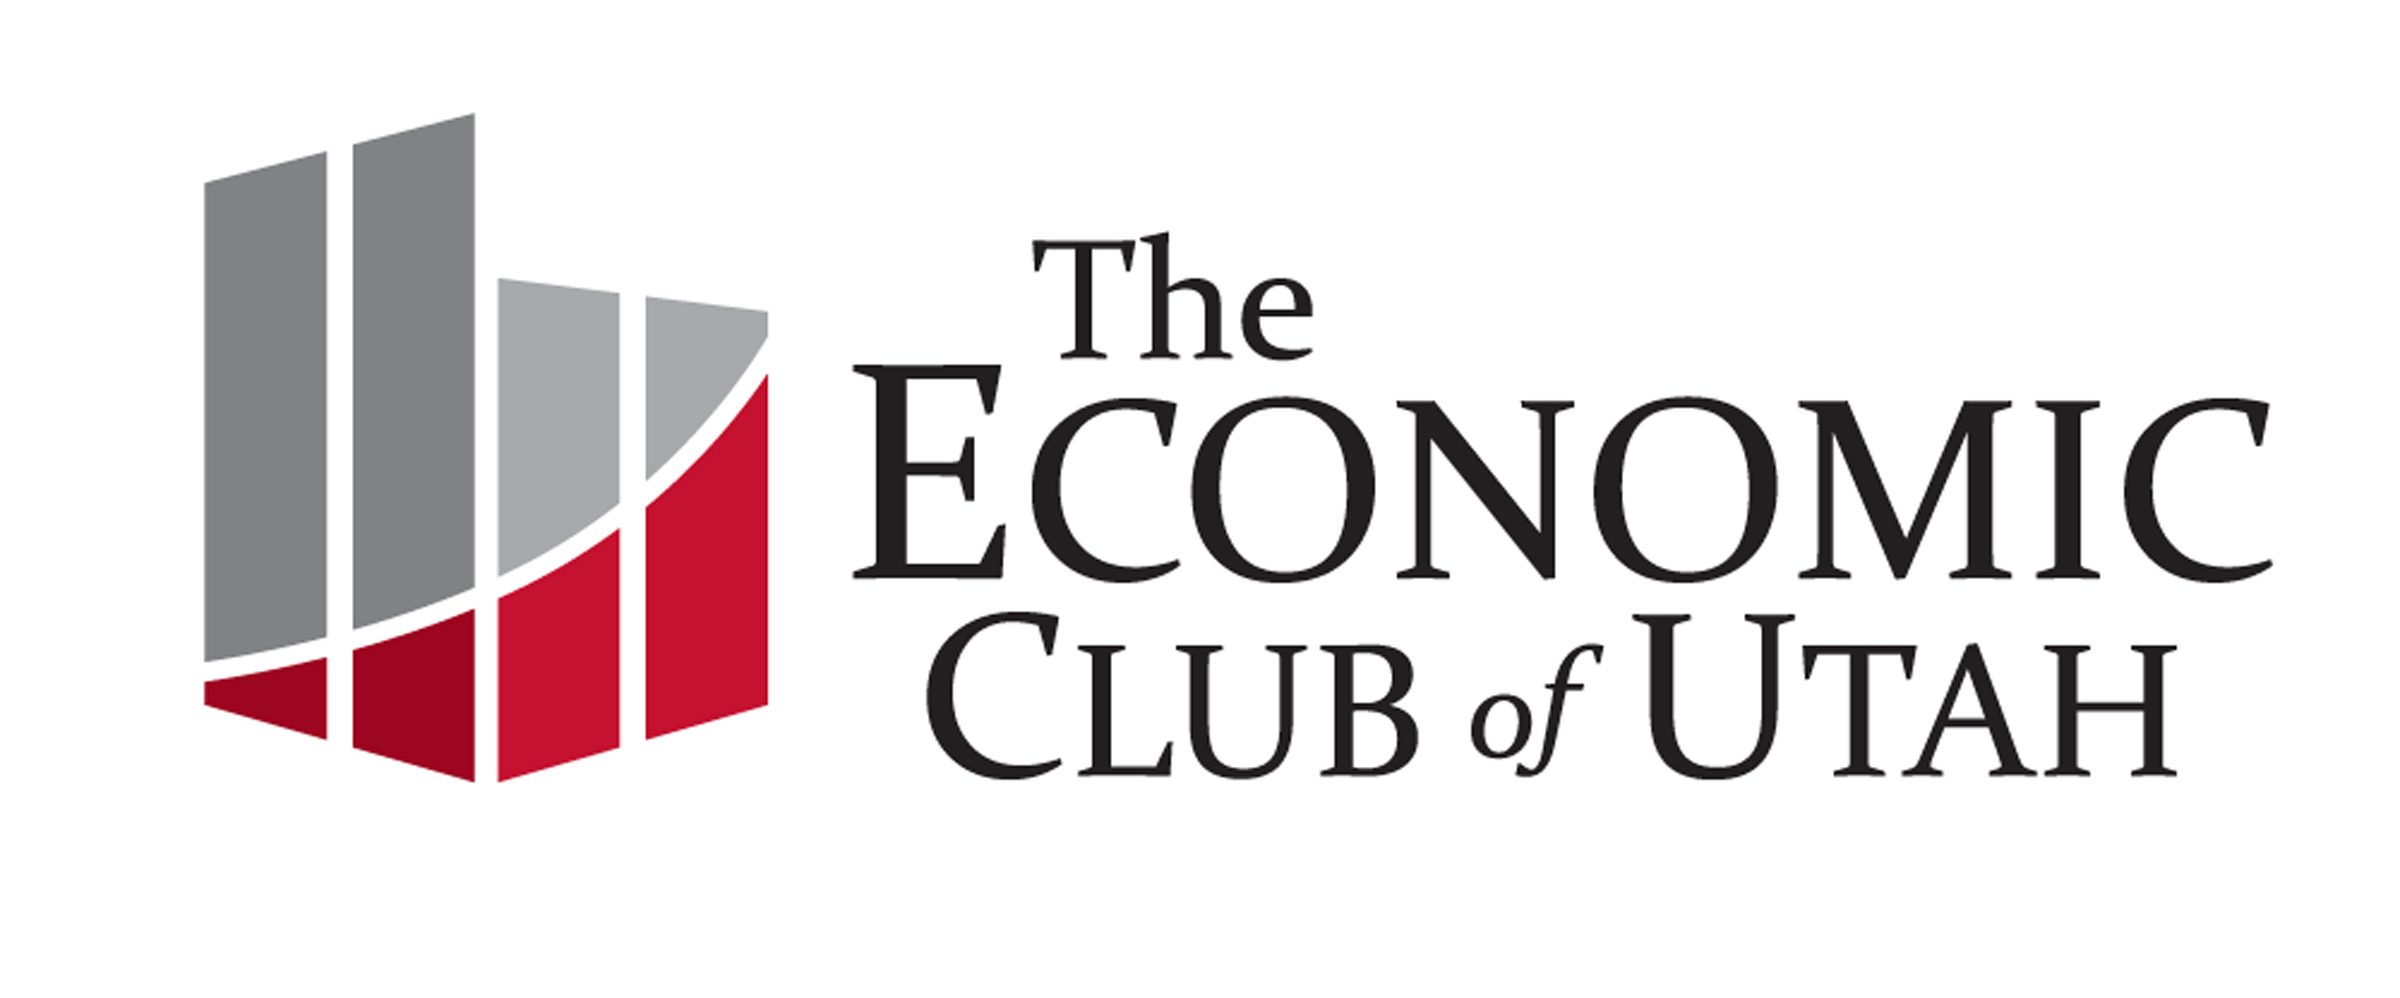 The Economic Club of Utah will provide a forum to share research, data and analysis important to the success of the economy.